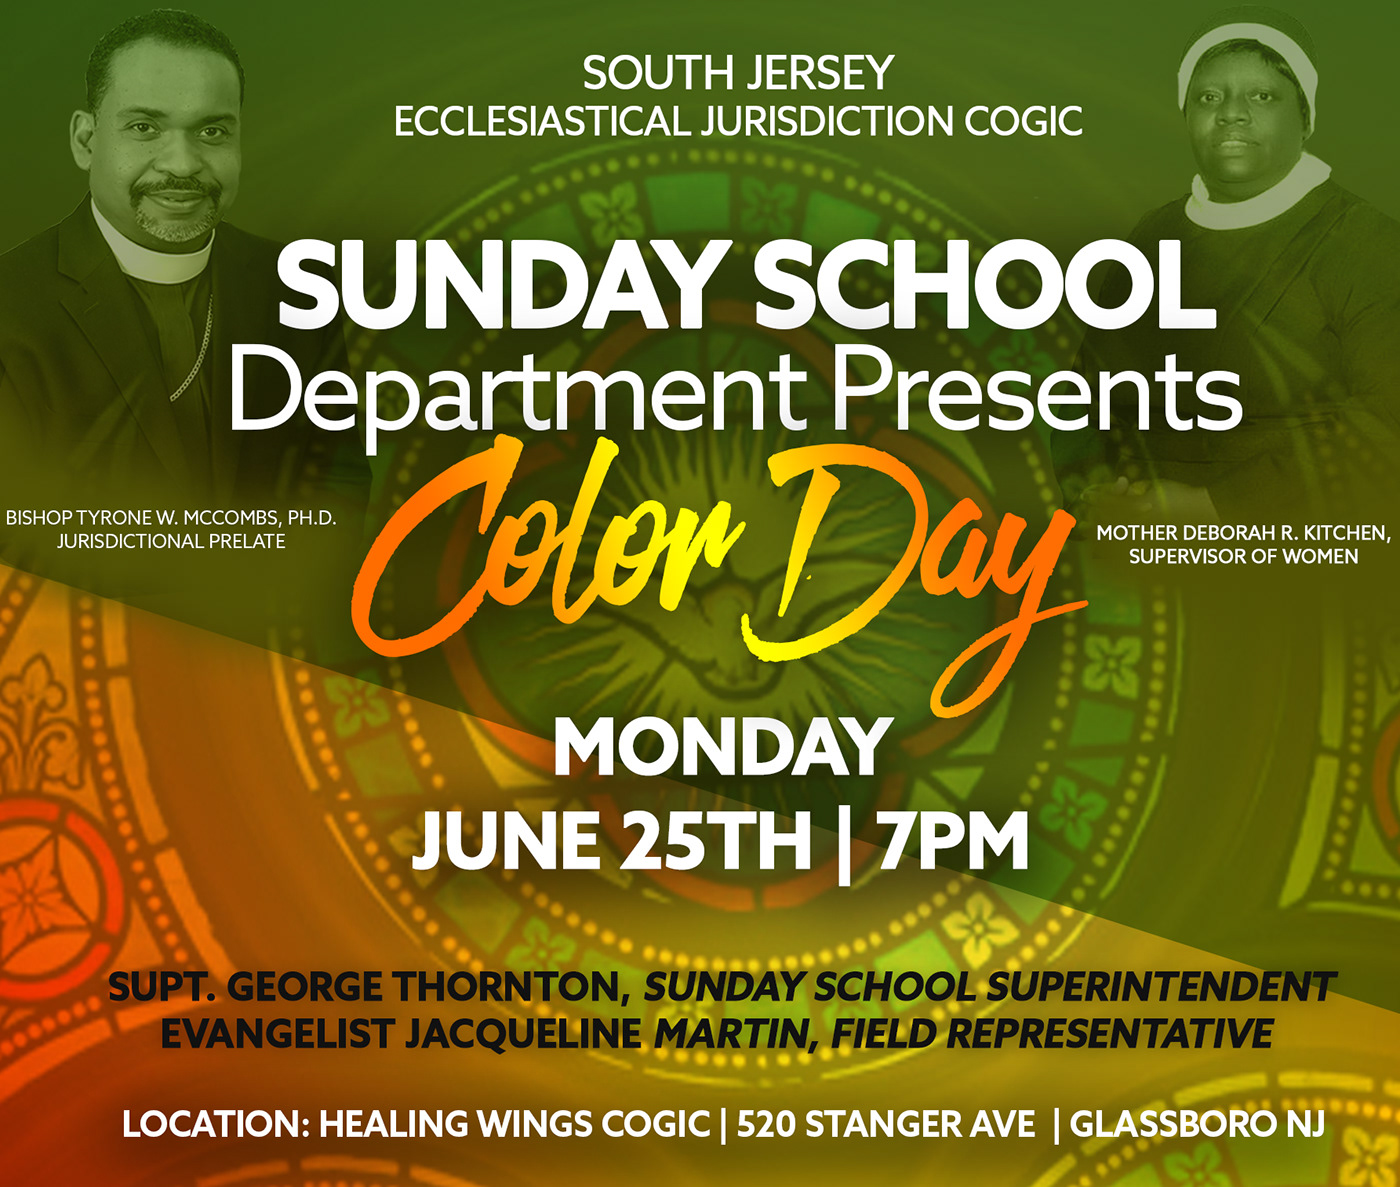 COGIC Events - South Jersey on Behance